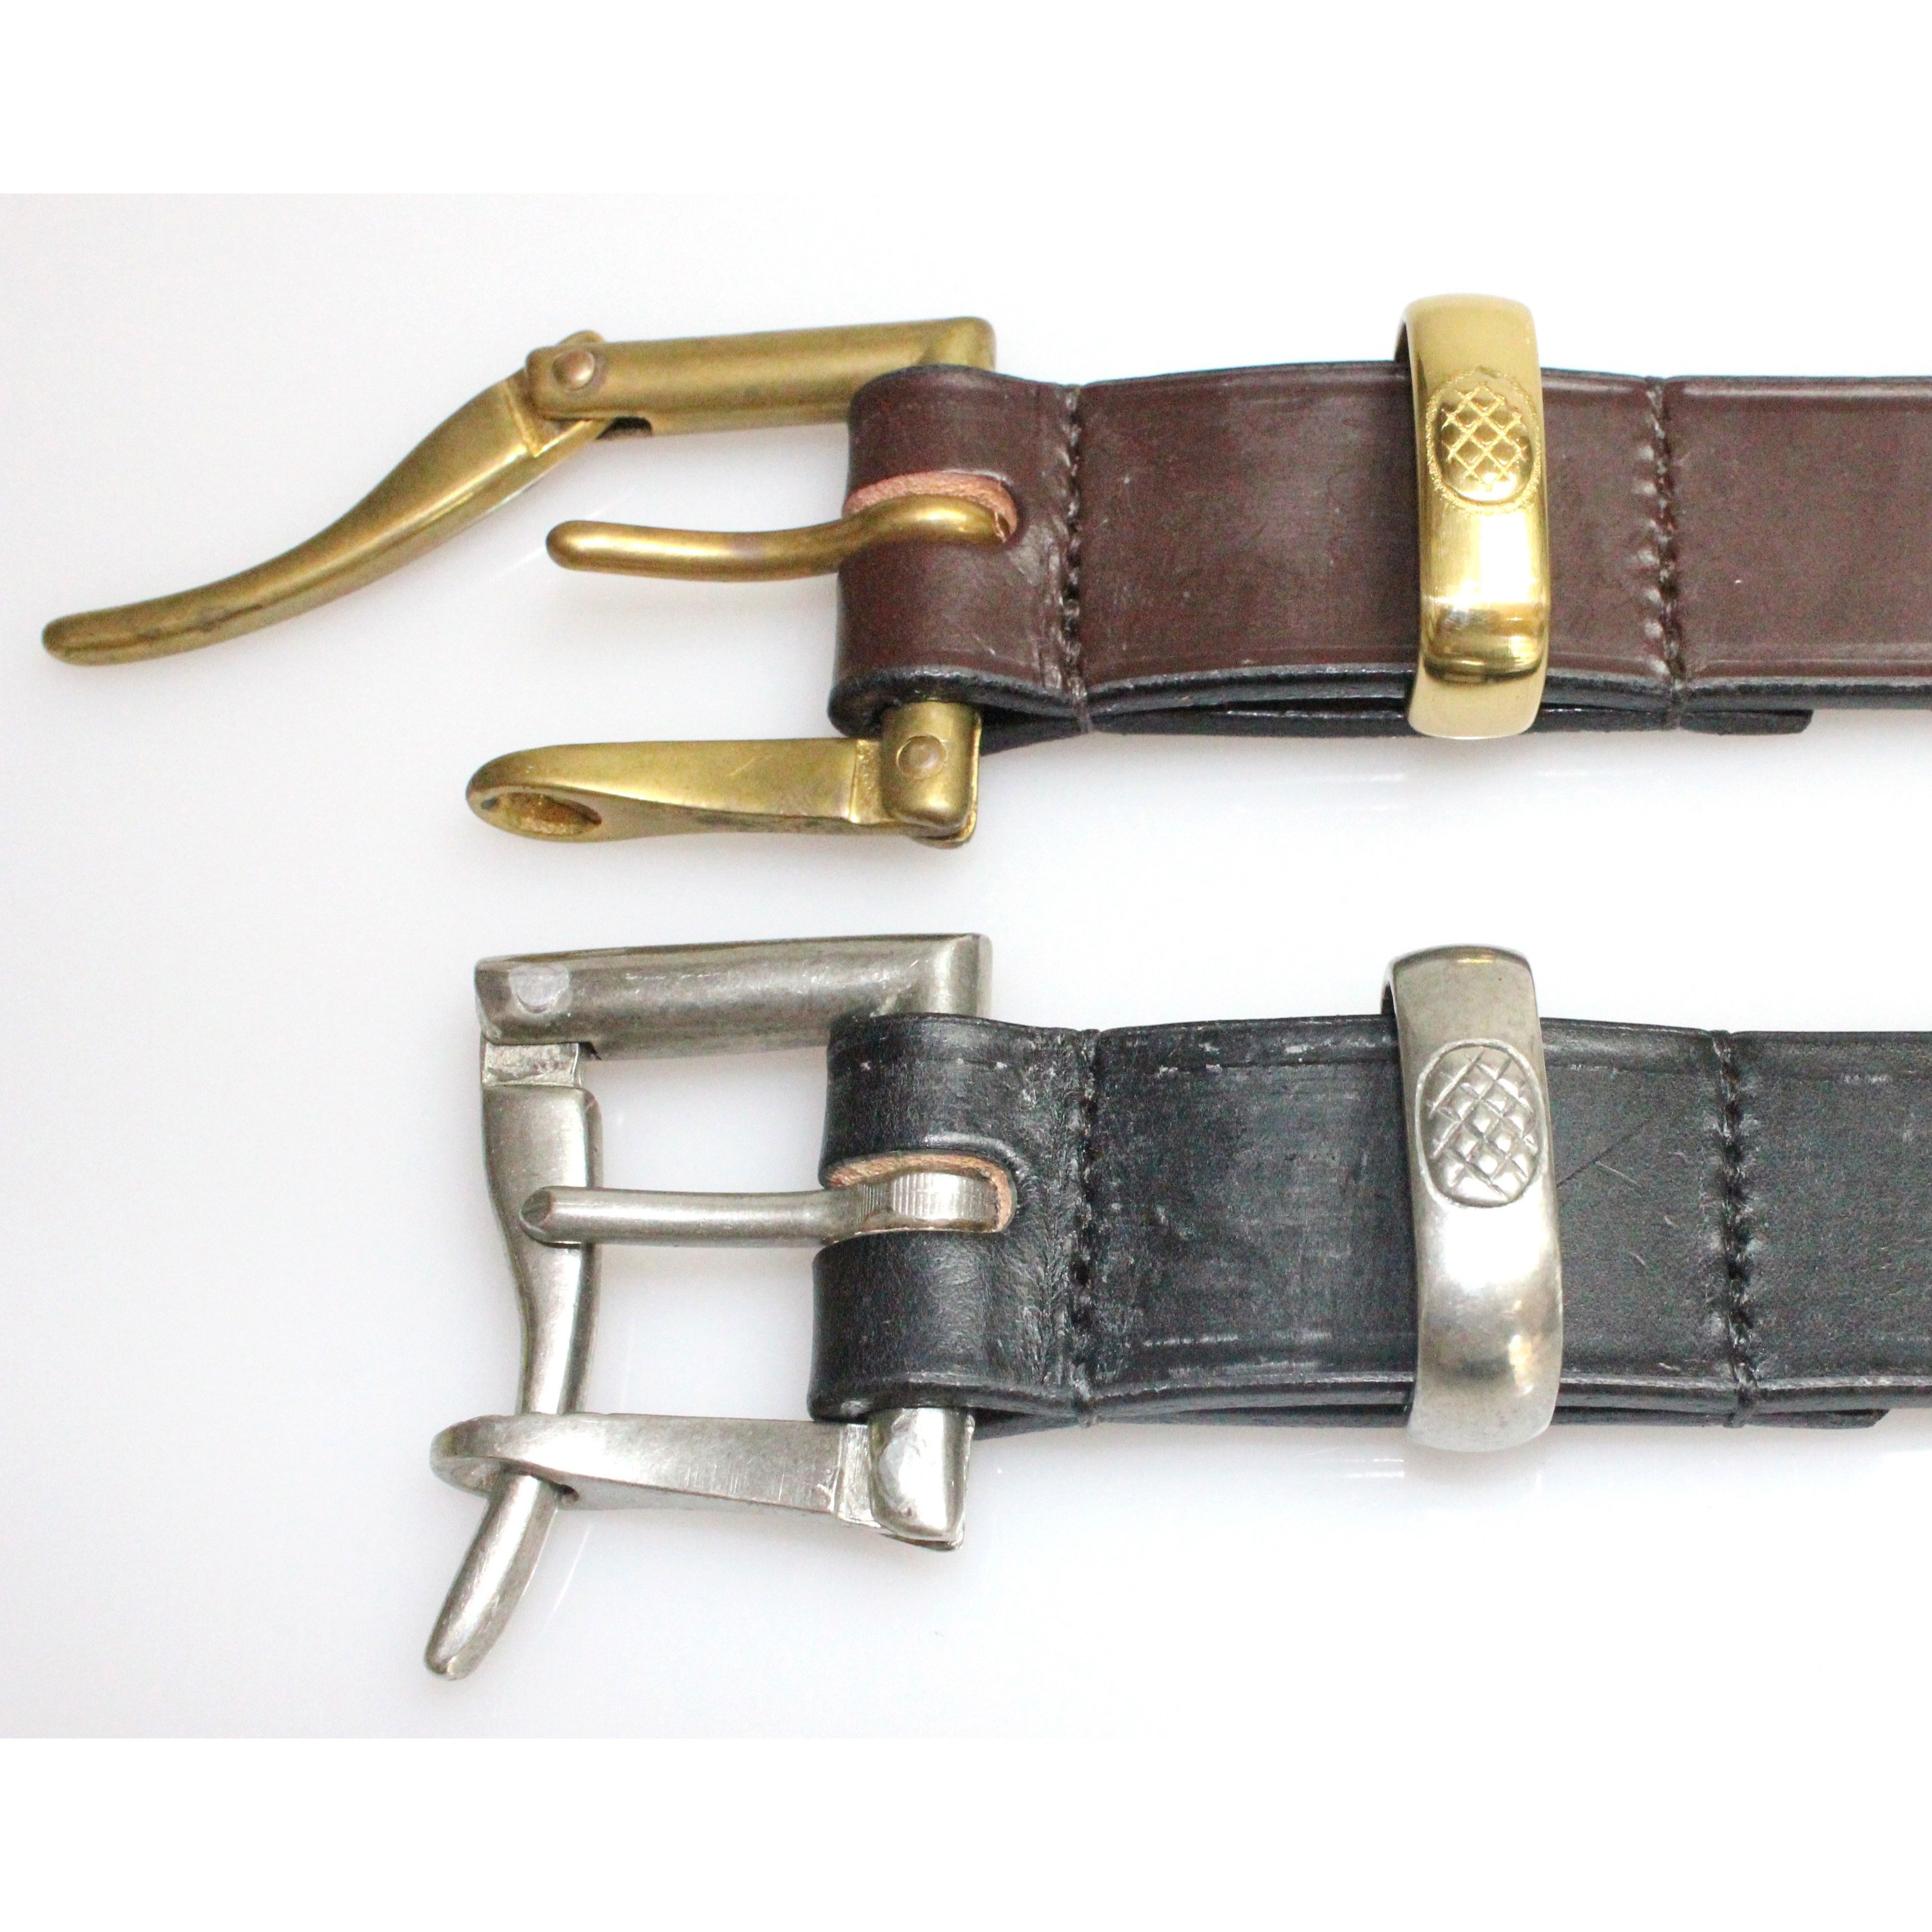 NEPENTHES Martin F. for Needles  Quick Release Belt Narrow